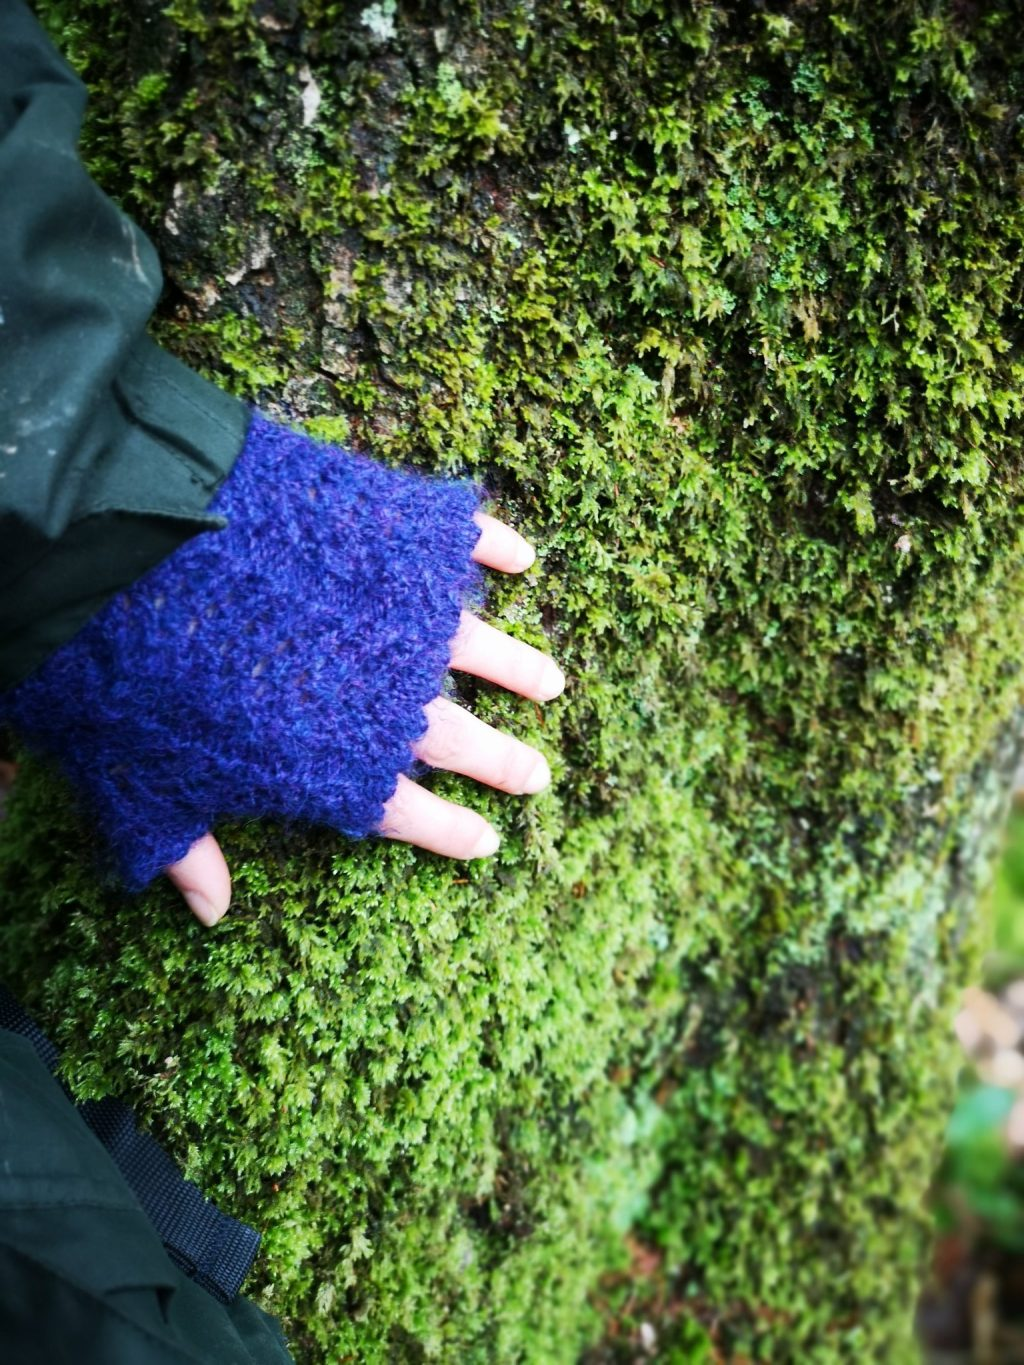 A hand in a fingerless mitten feeling the moss on a tree